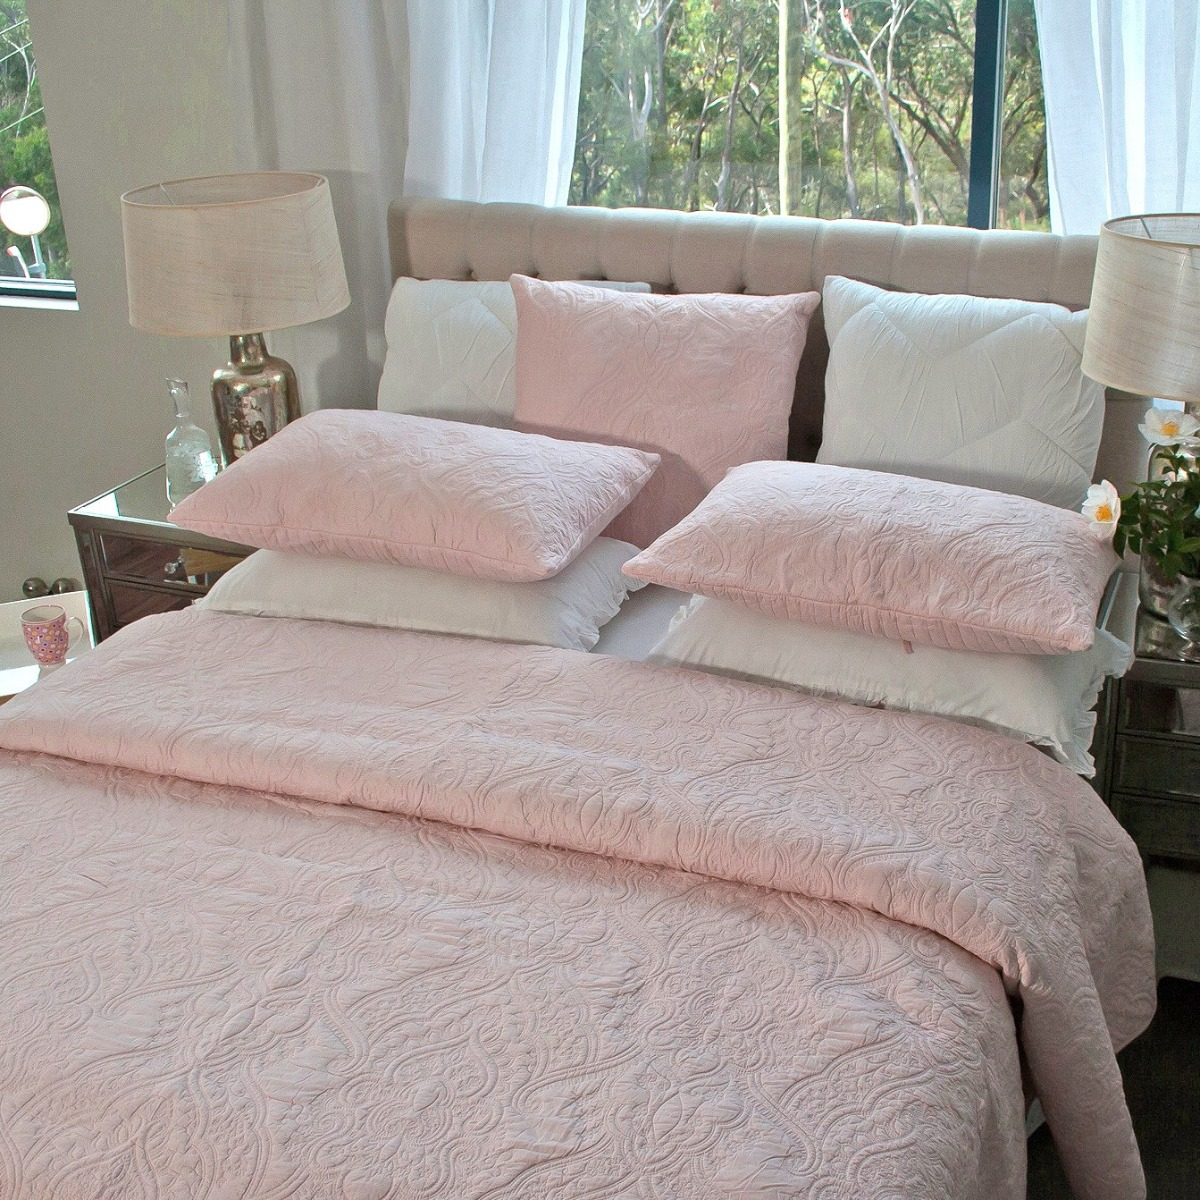 Angads-Dmask-100-Cotton-Quilted-Bedspread-Set-With-Two-Pillowcases-in-Pink